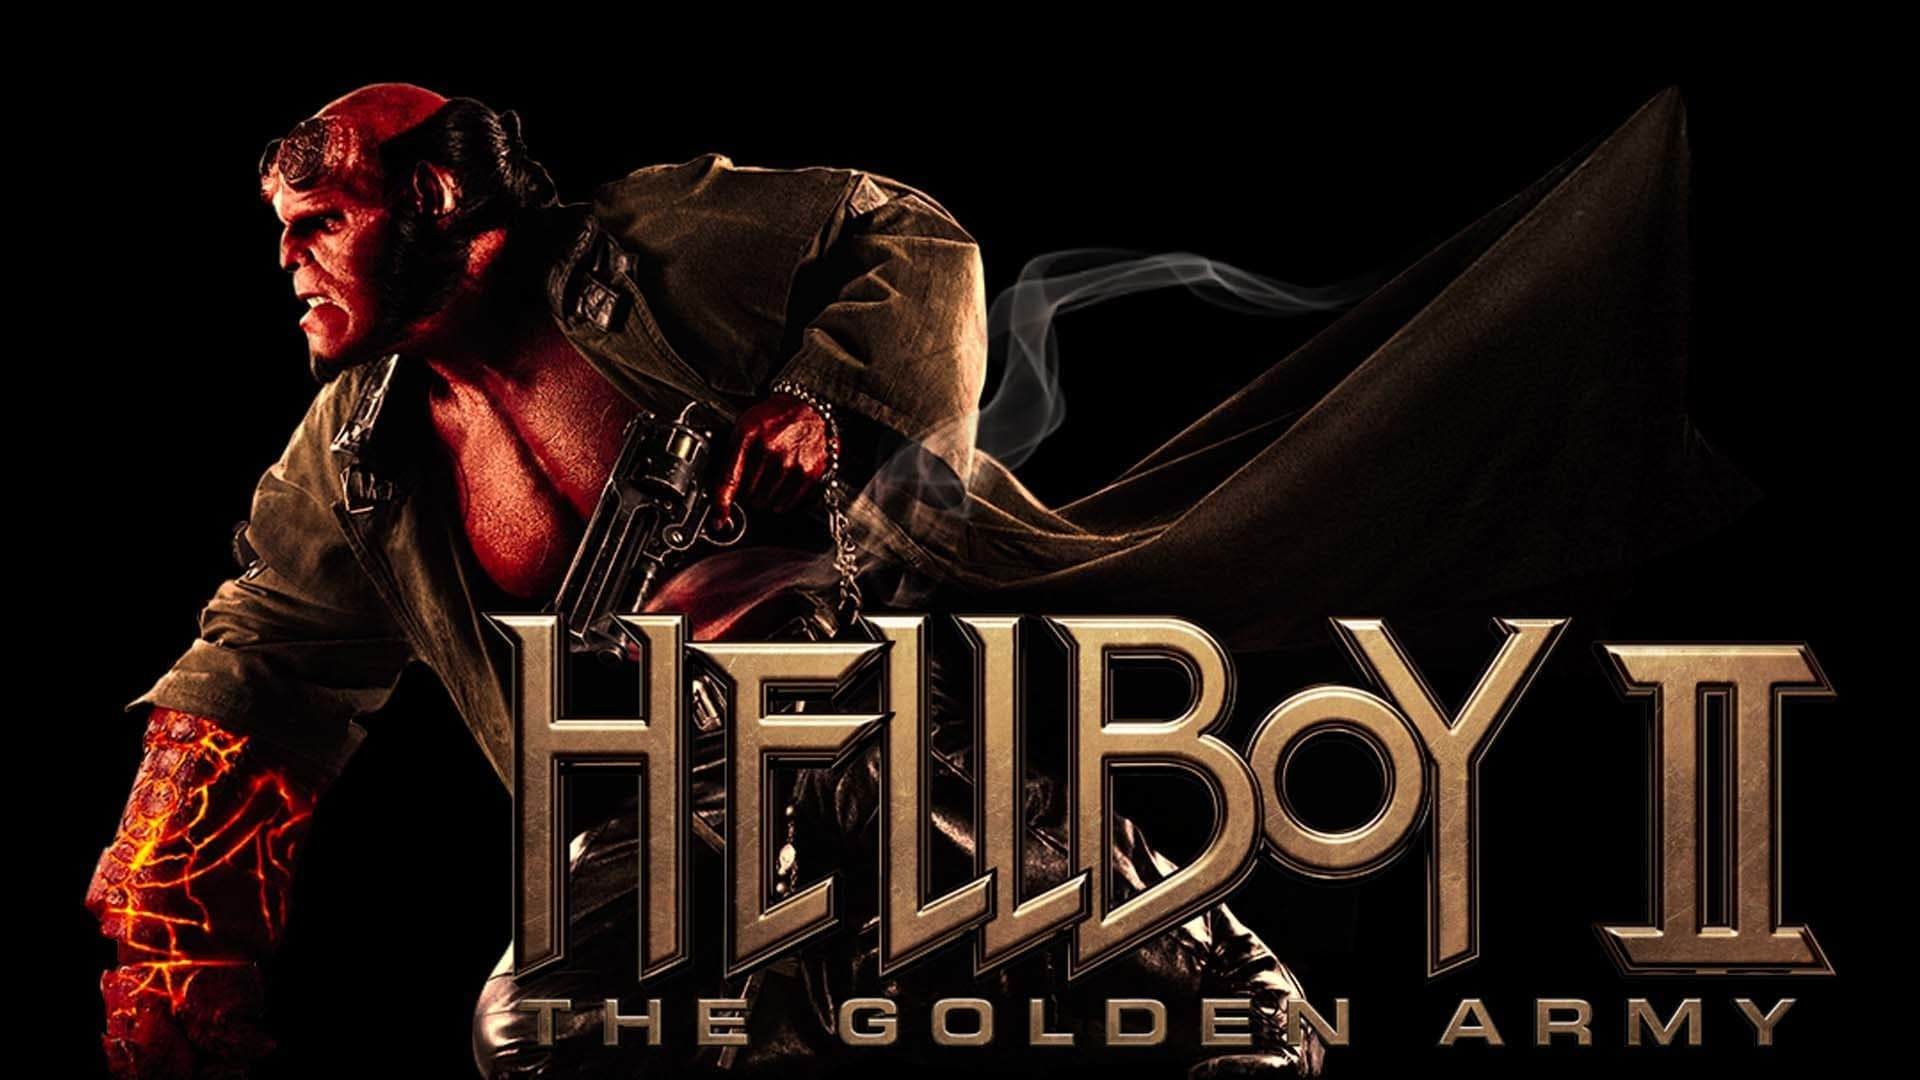 hellboy 2 stream movie4k